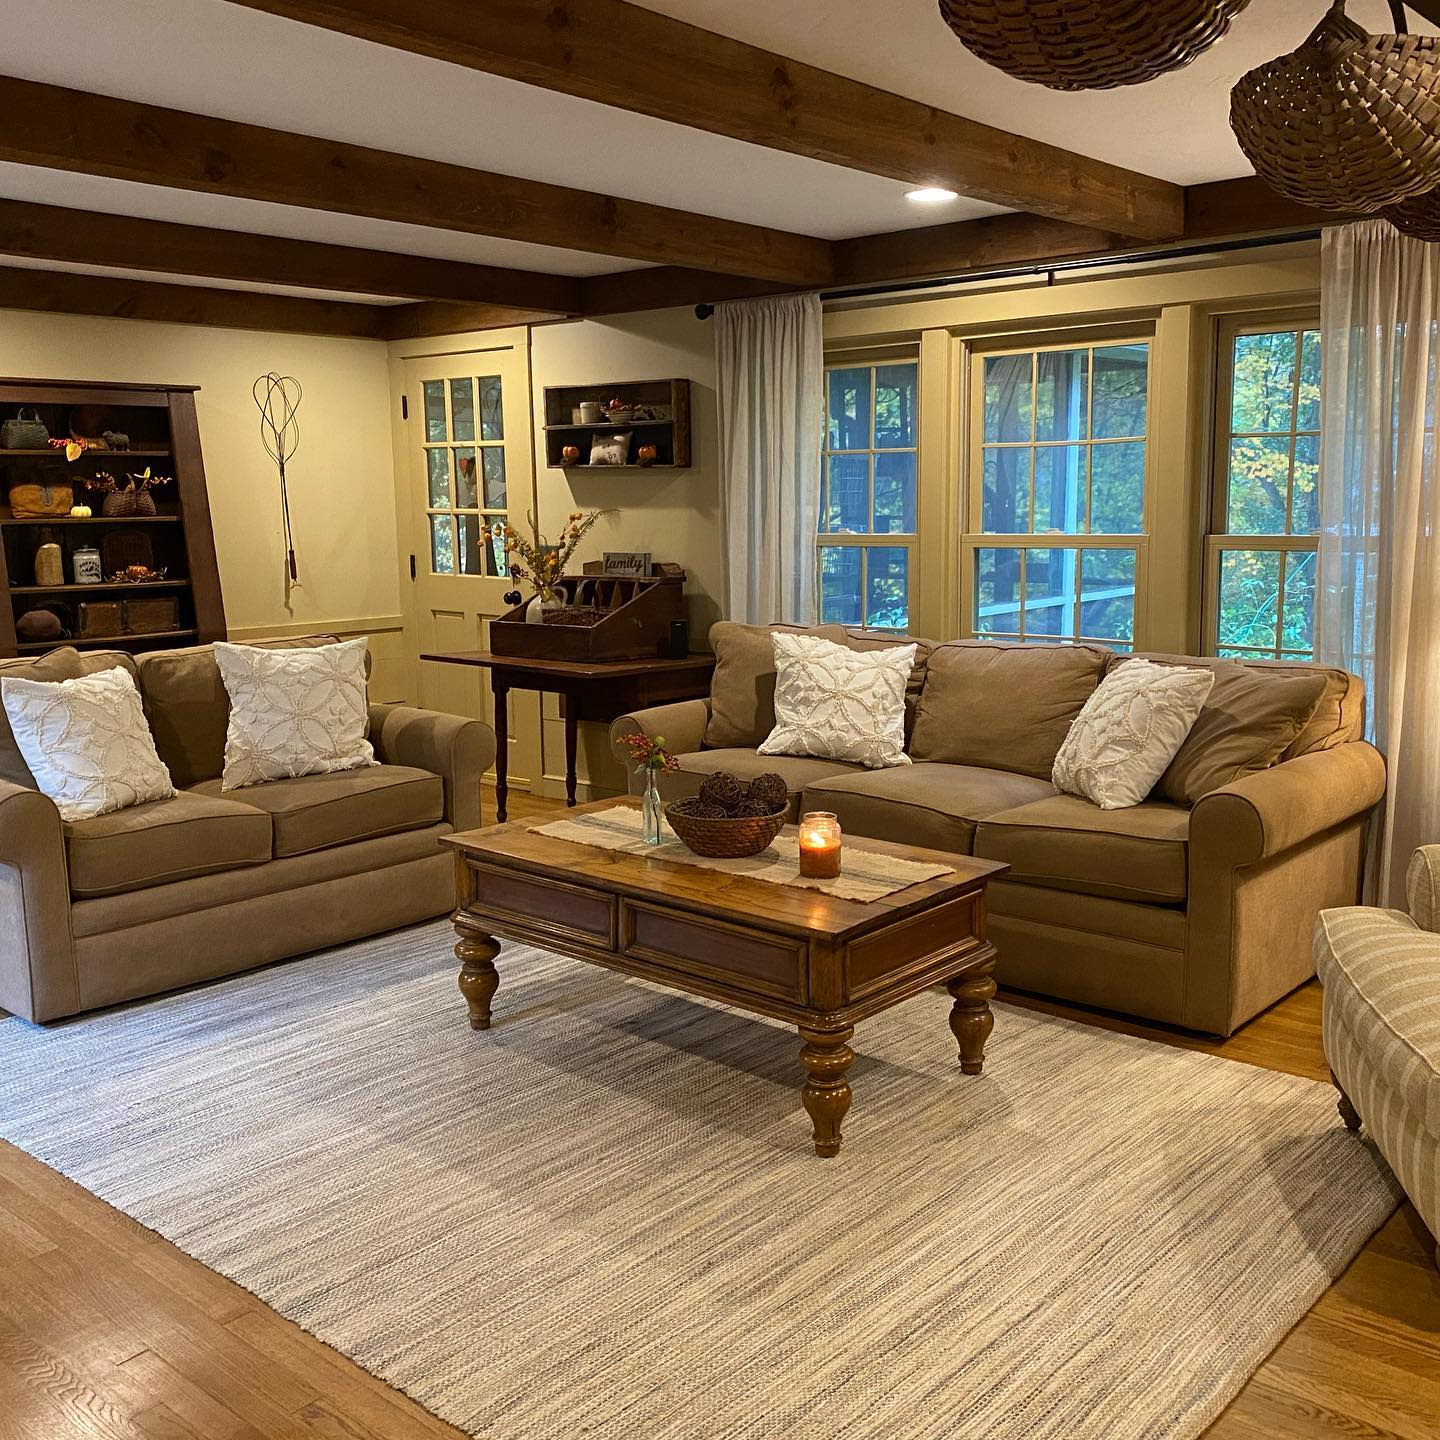 Farmhouse Country Living Room Ideas -ournoonhillhome